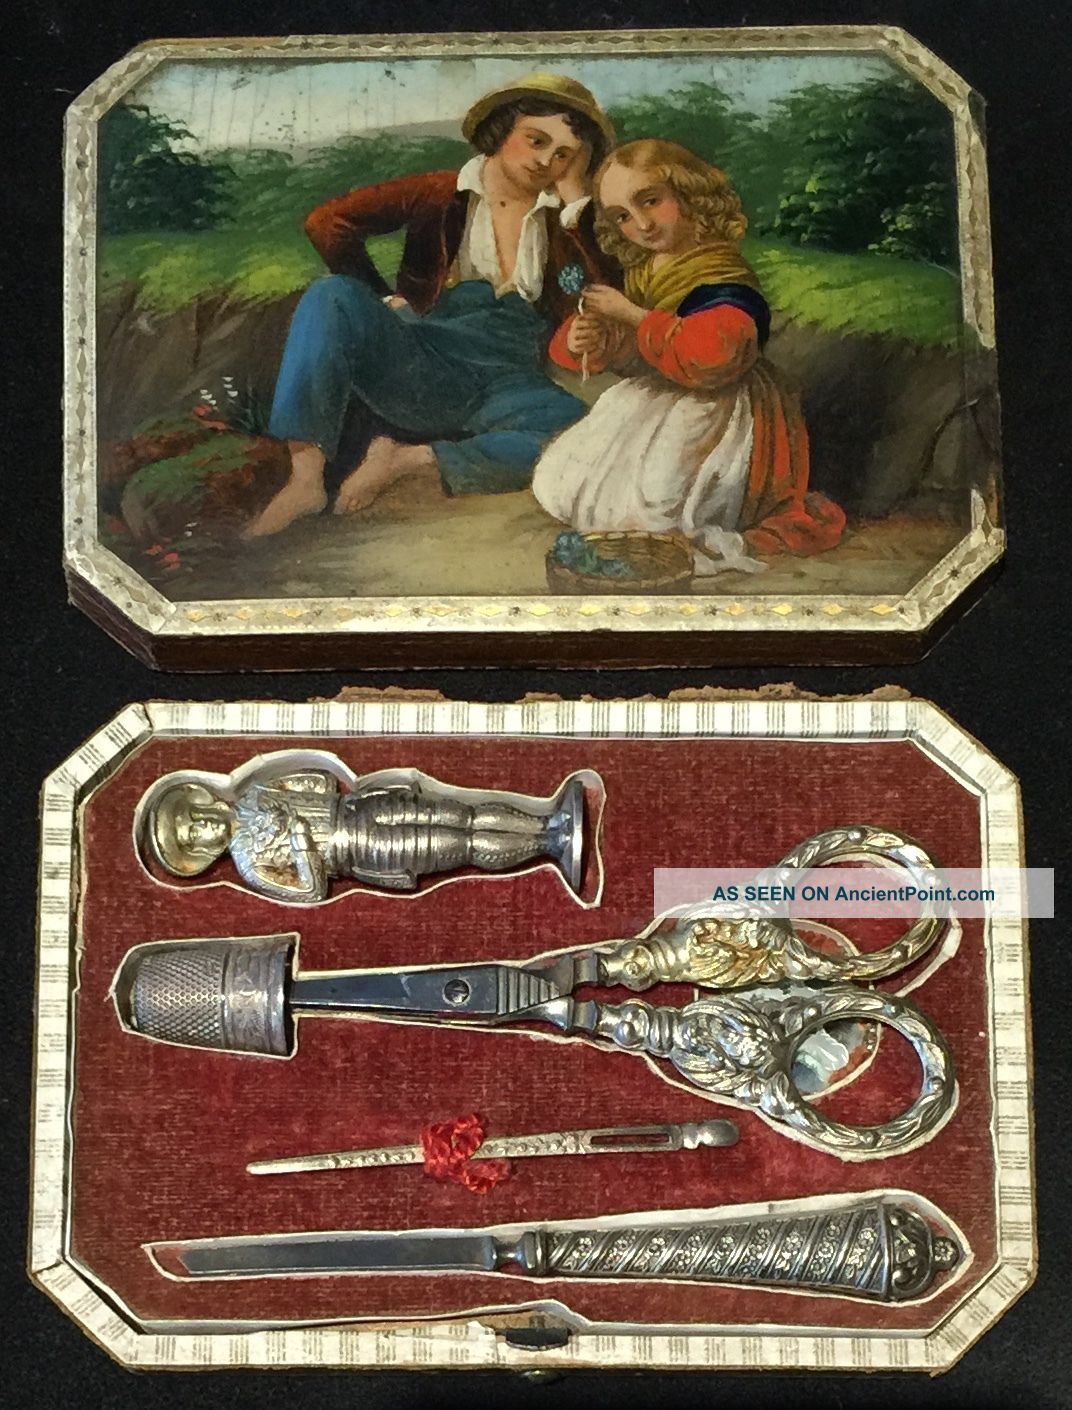 Antique German Stobwasser Sewing Etui Figural Needle Case Lacquer Painted 1818 Other Antique Sewing photo